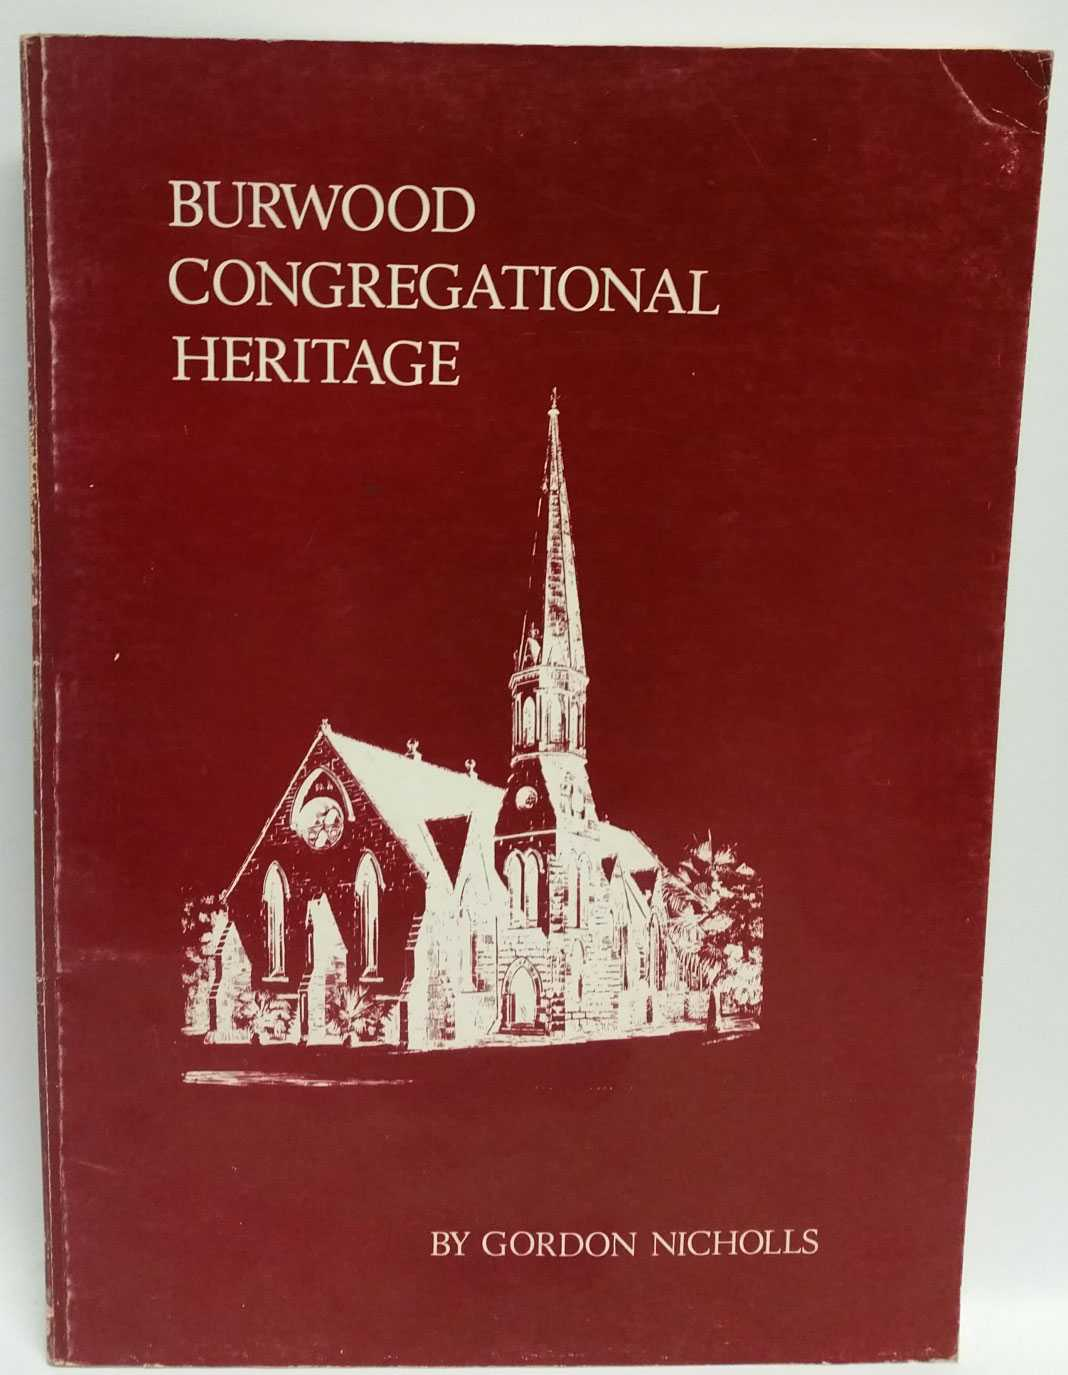 Burwood Congregational Heritage, Gordon Nicholls